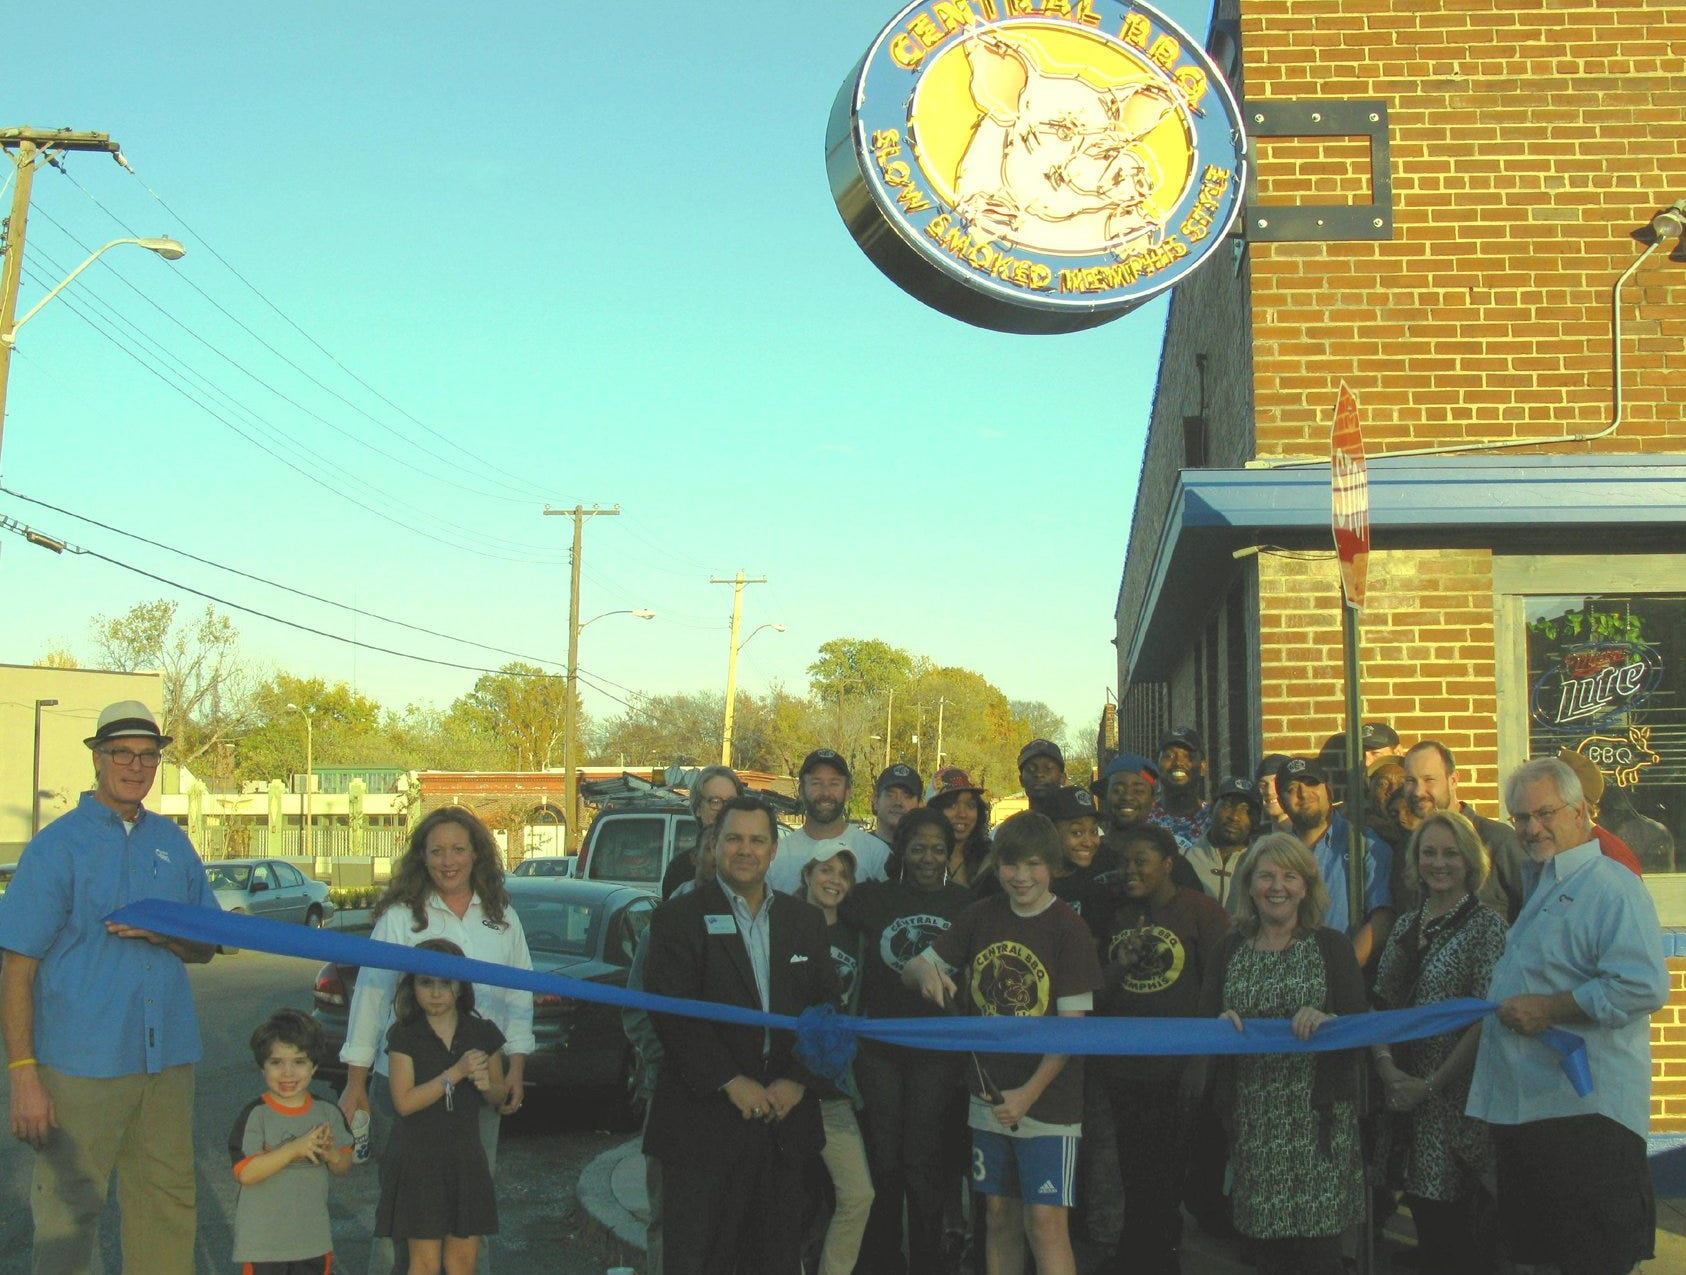 Central BBQ recently celebrated their new restaurant location opening with a ribbon-cutting ceremony. Joining owners Craig and Elizabeth Blondis were Greater Memphis Chamber Staff and Ambassadors. The restaurant is at 147 East Butler in Downtown Memphis.